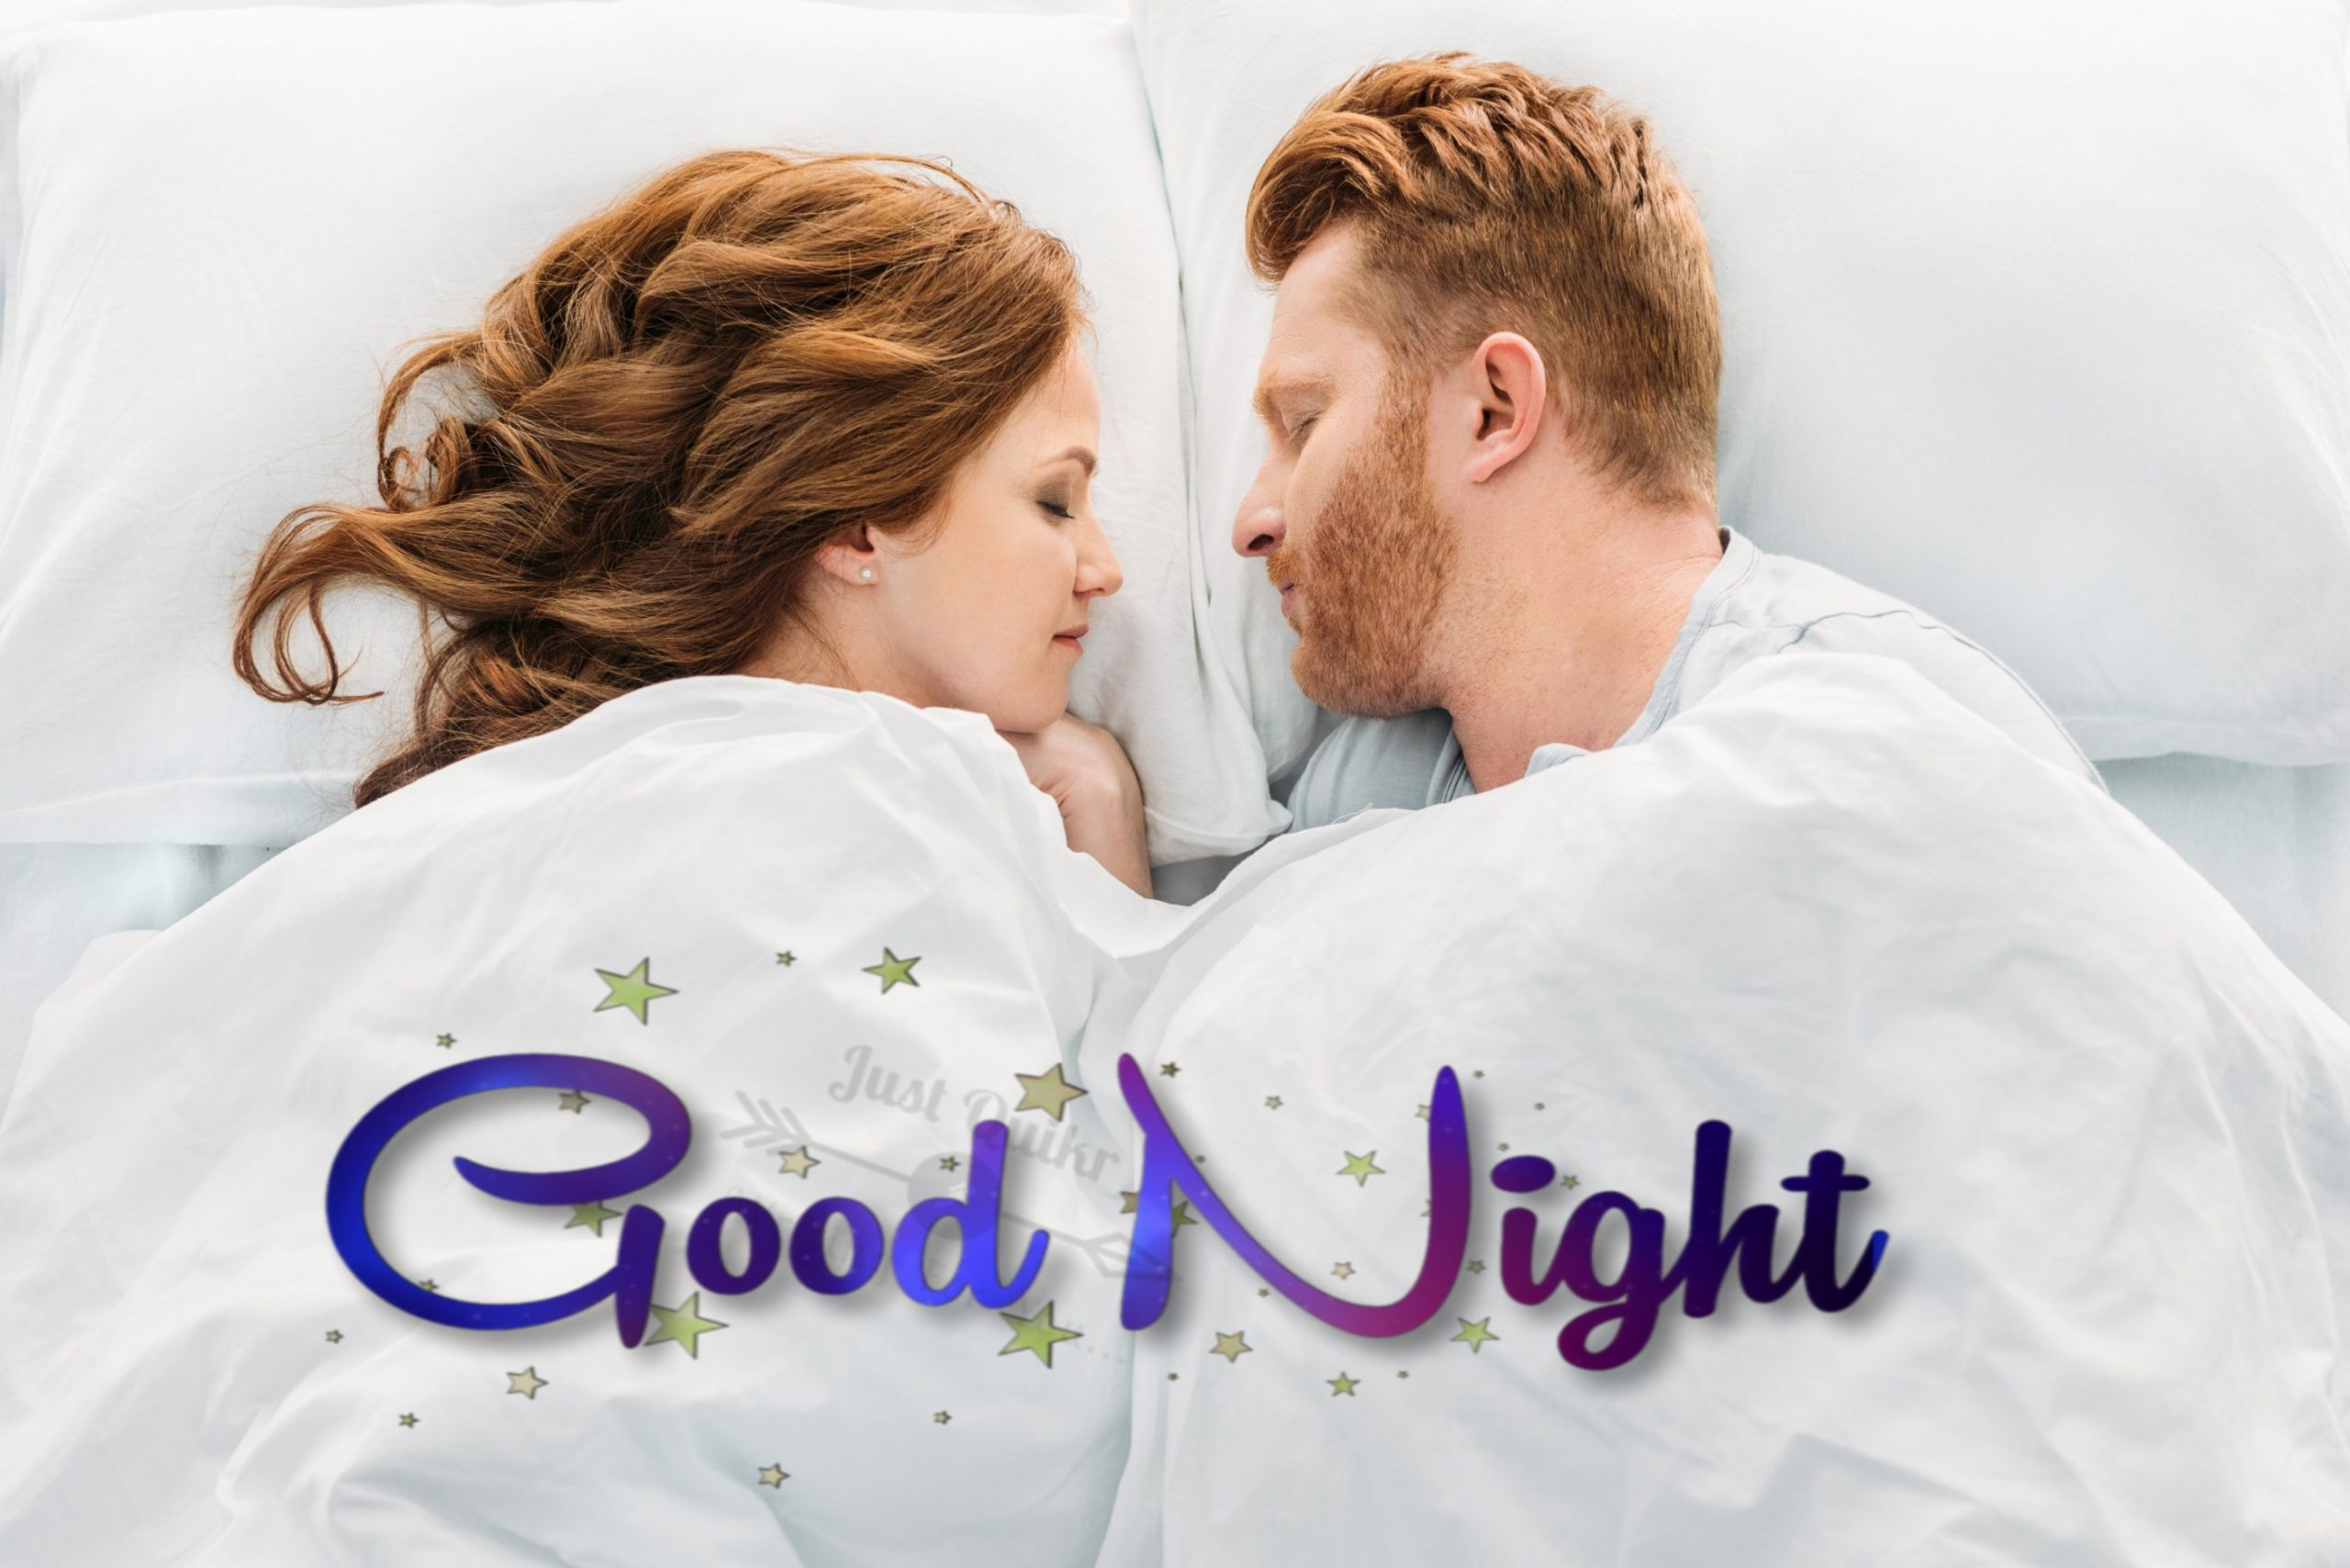 Good Night HD Pics Images For Husband Wife